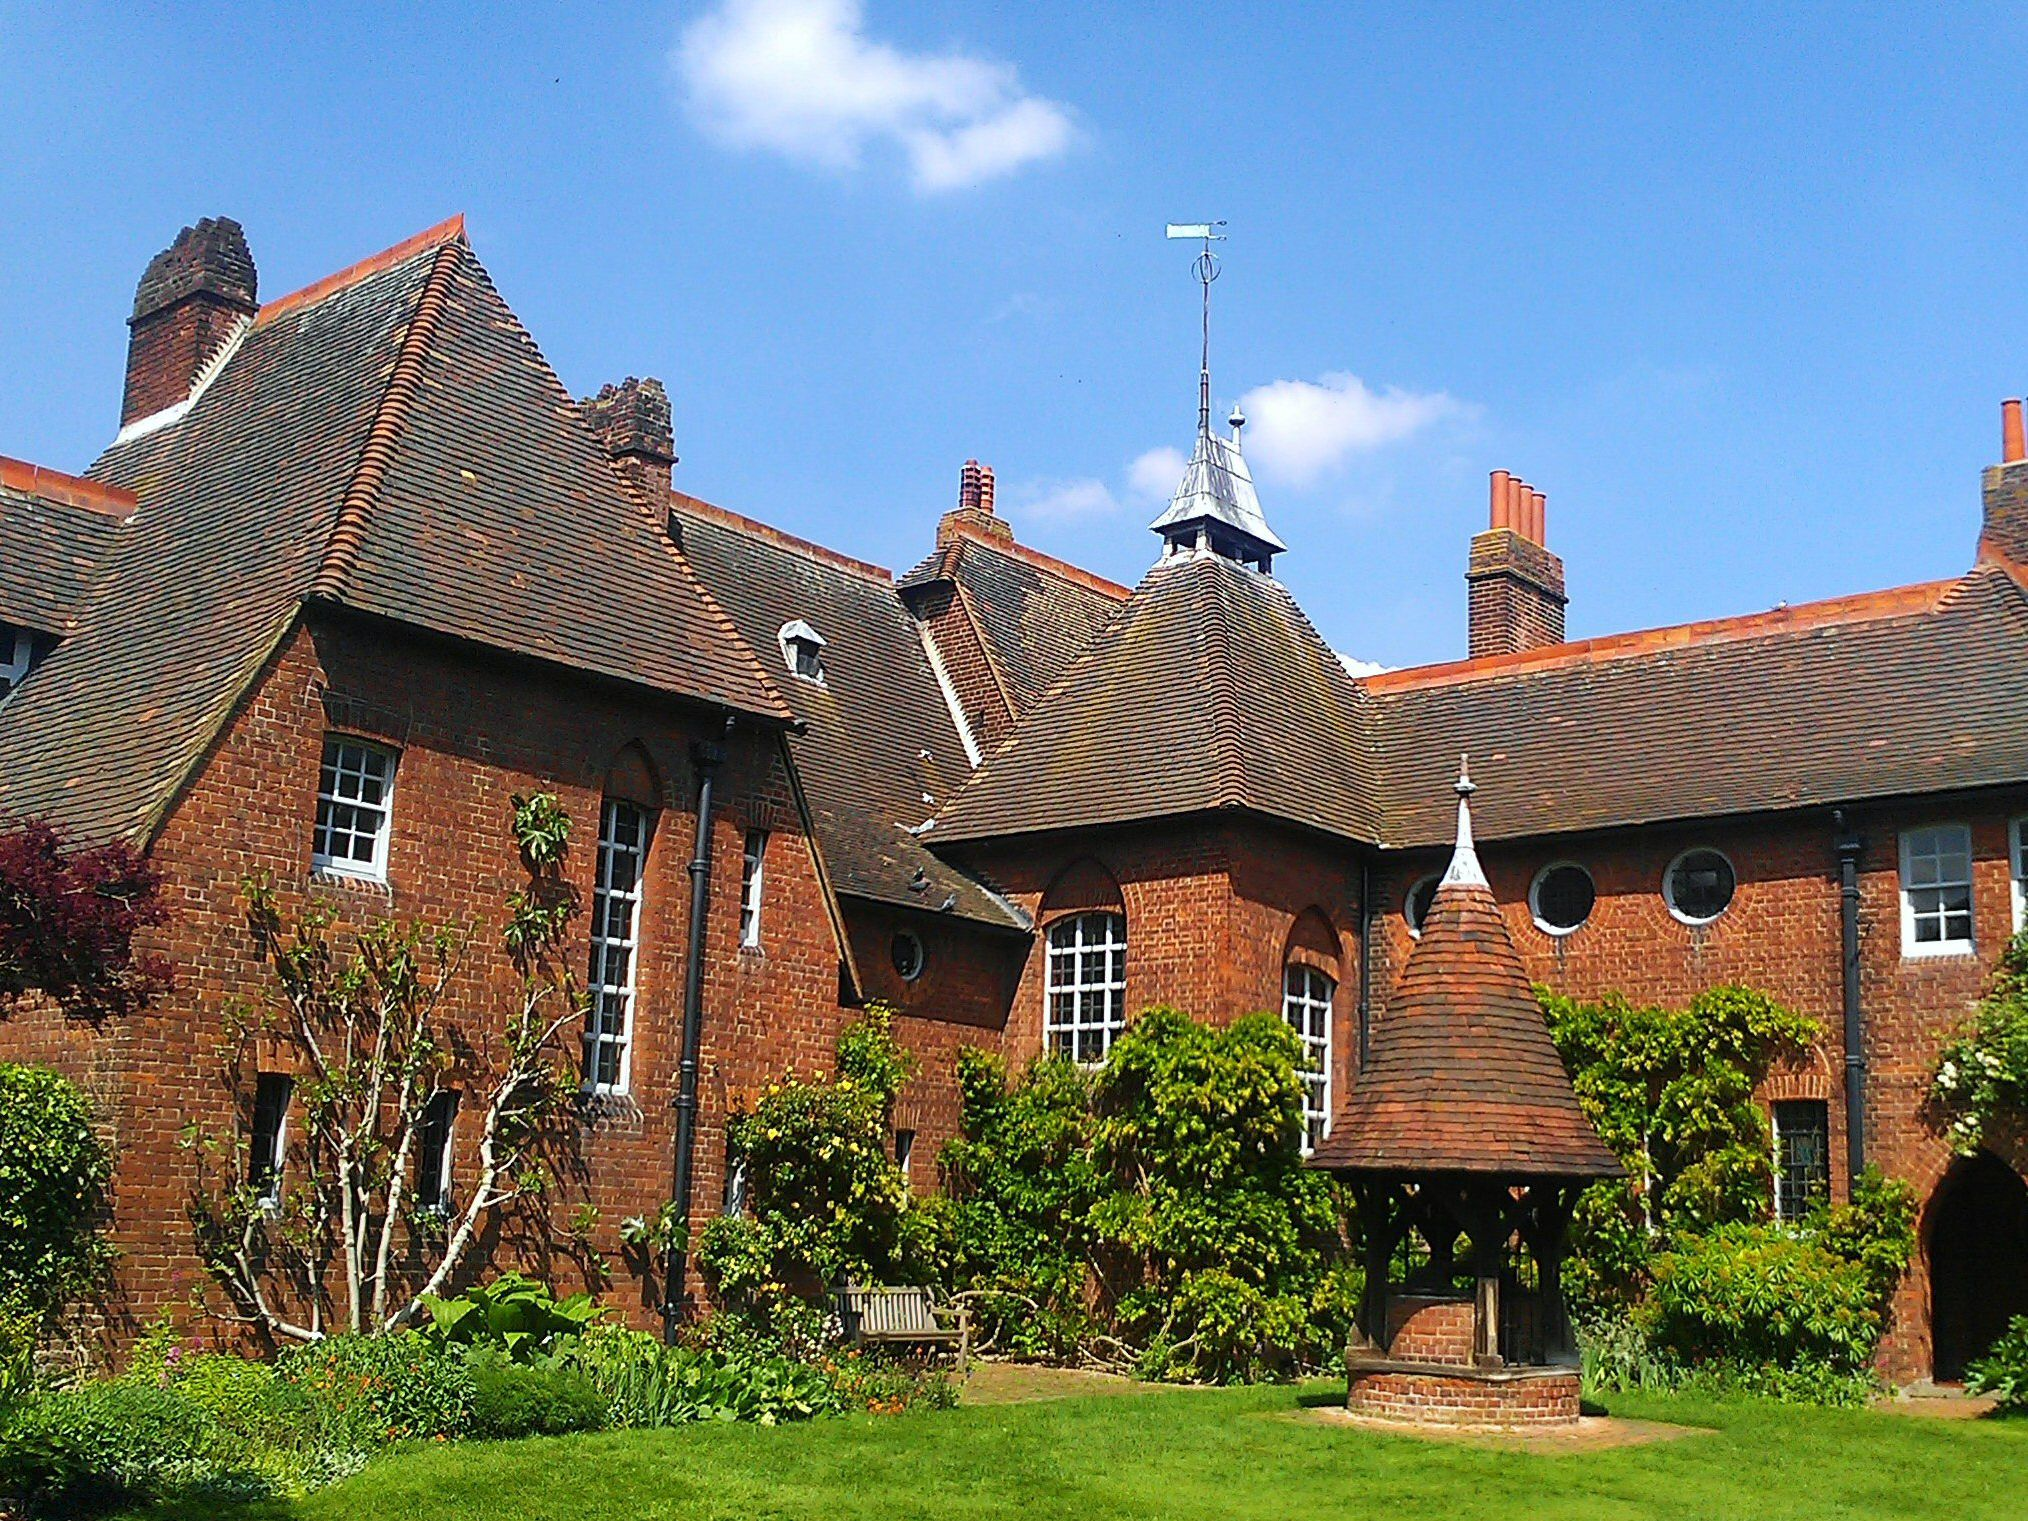 Gables Of St Morris philip webb, about the architect of arts & crafts